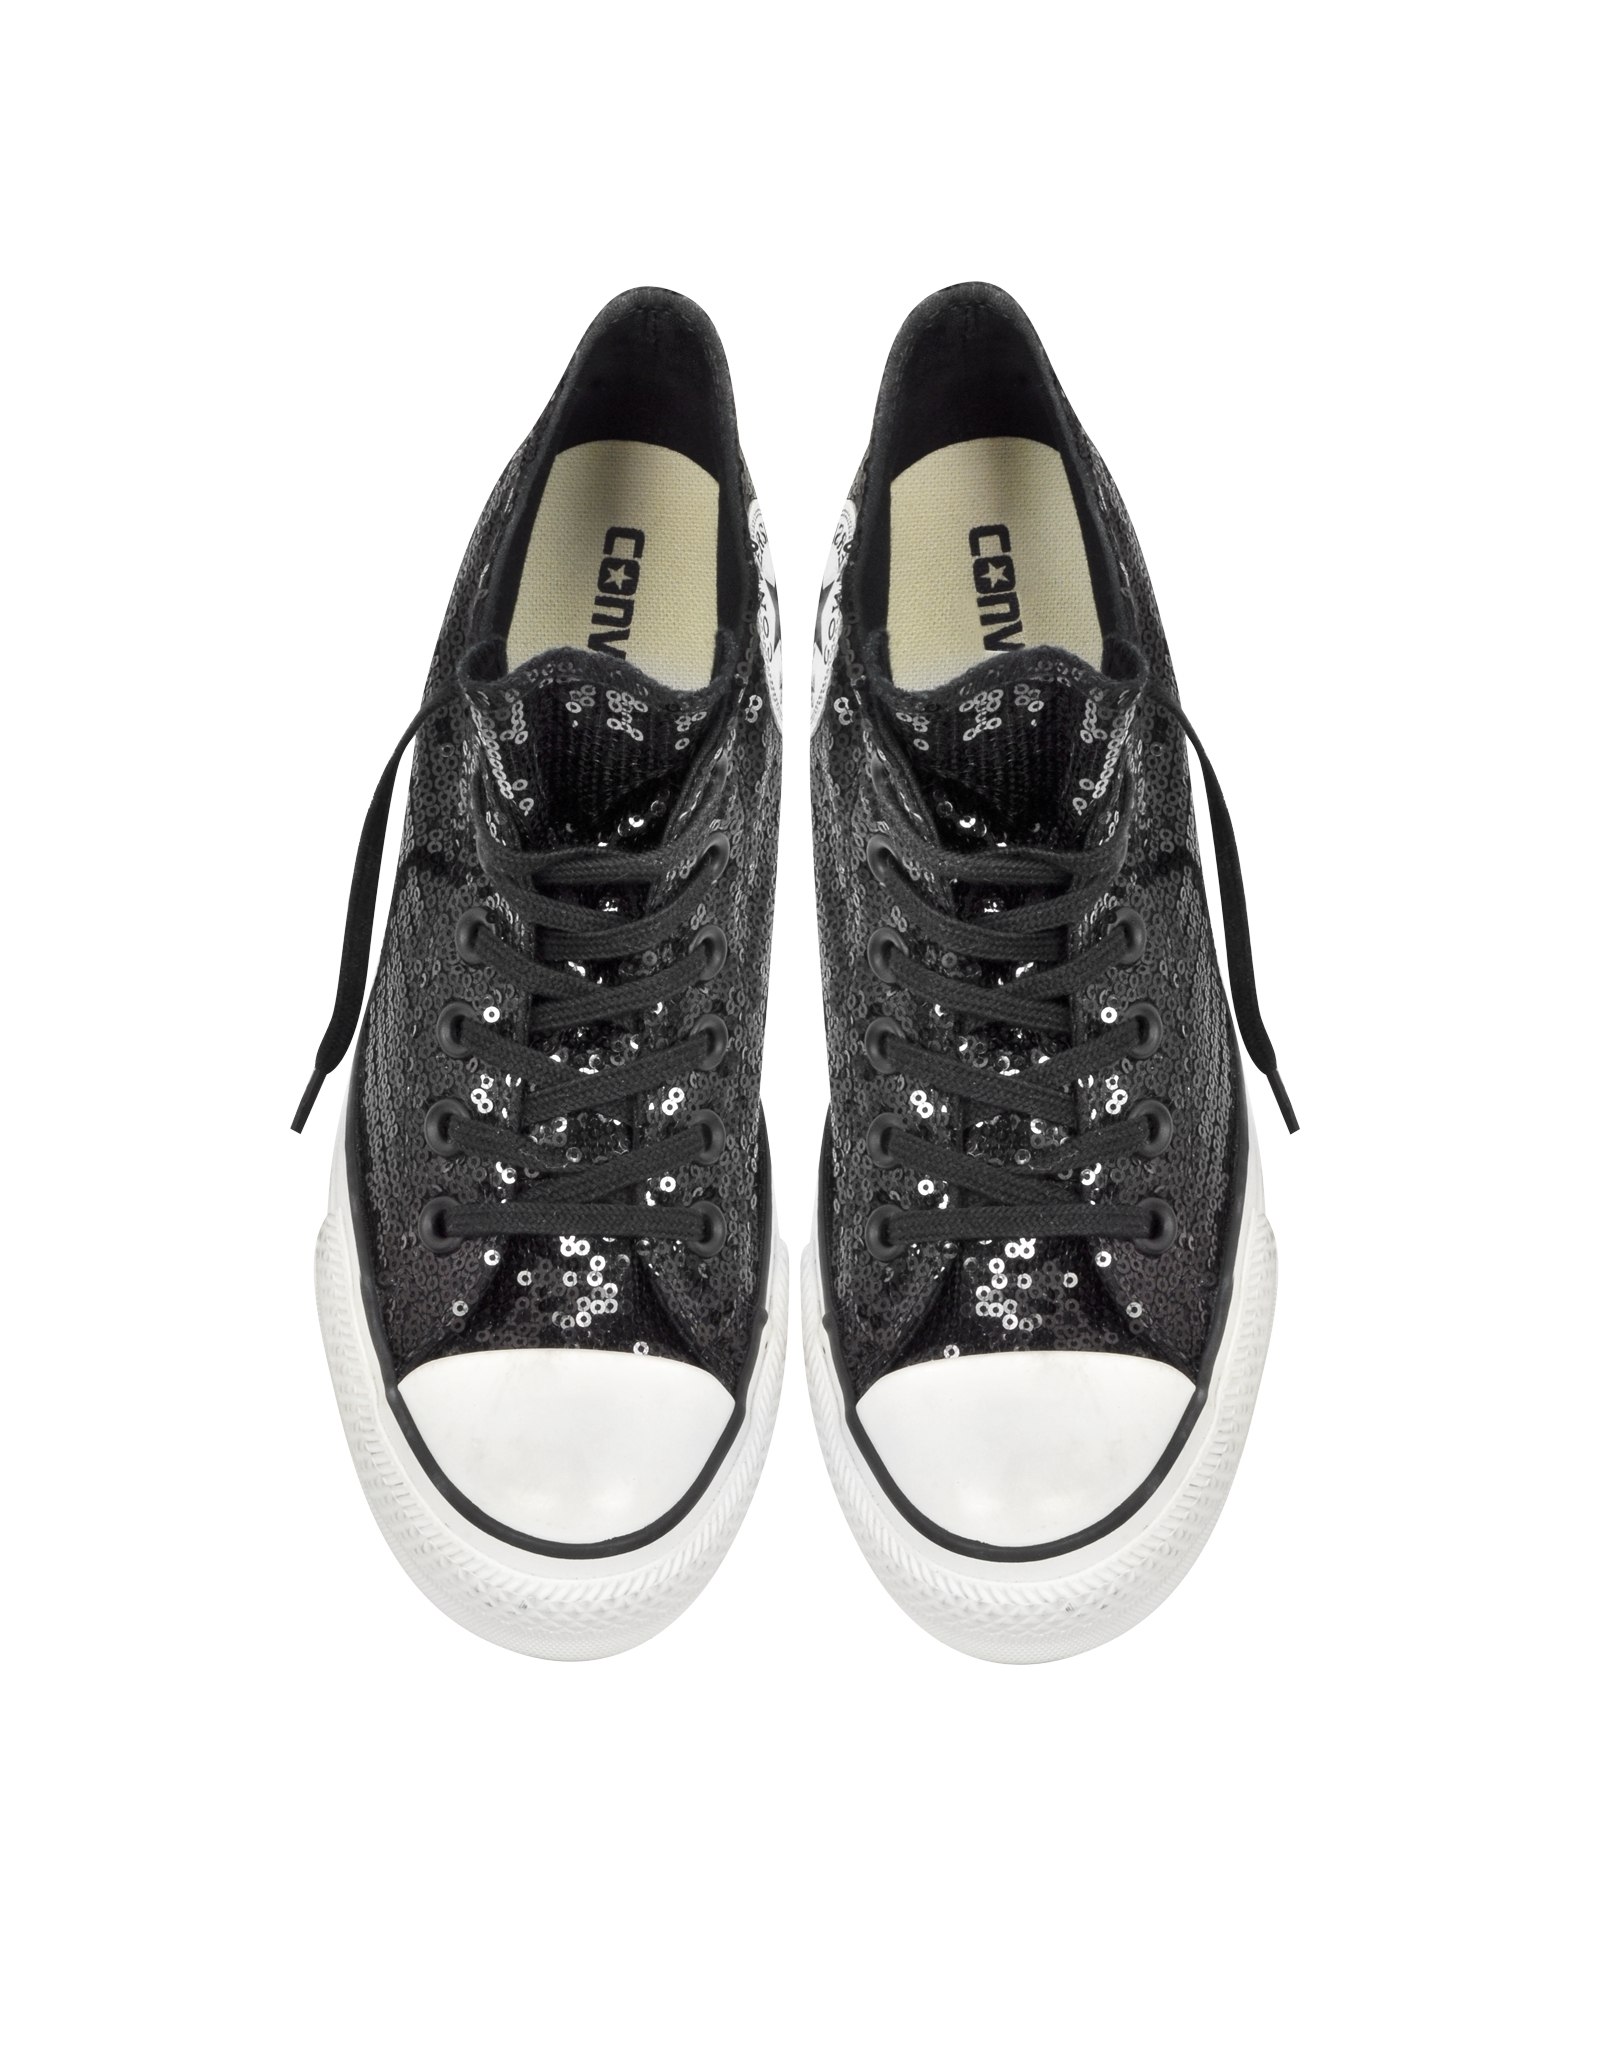 3e2d134efa61 Lyst - Converse All Star Mid Lux Black Sequins And Canvas Wedge ...